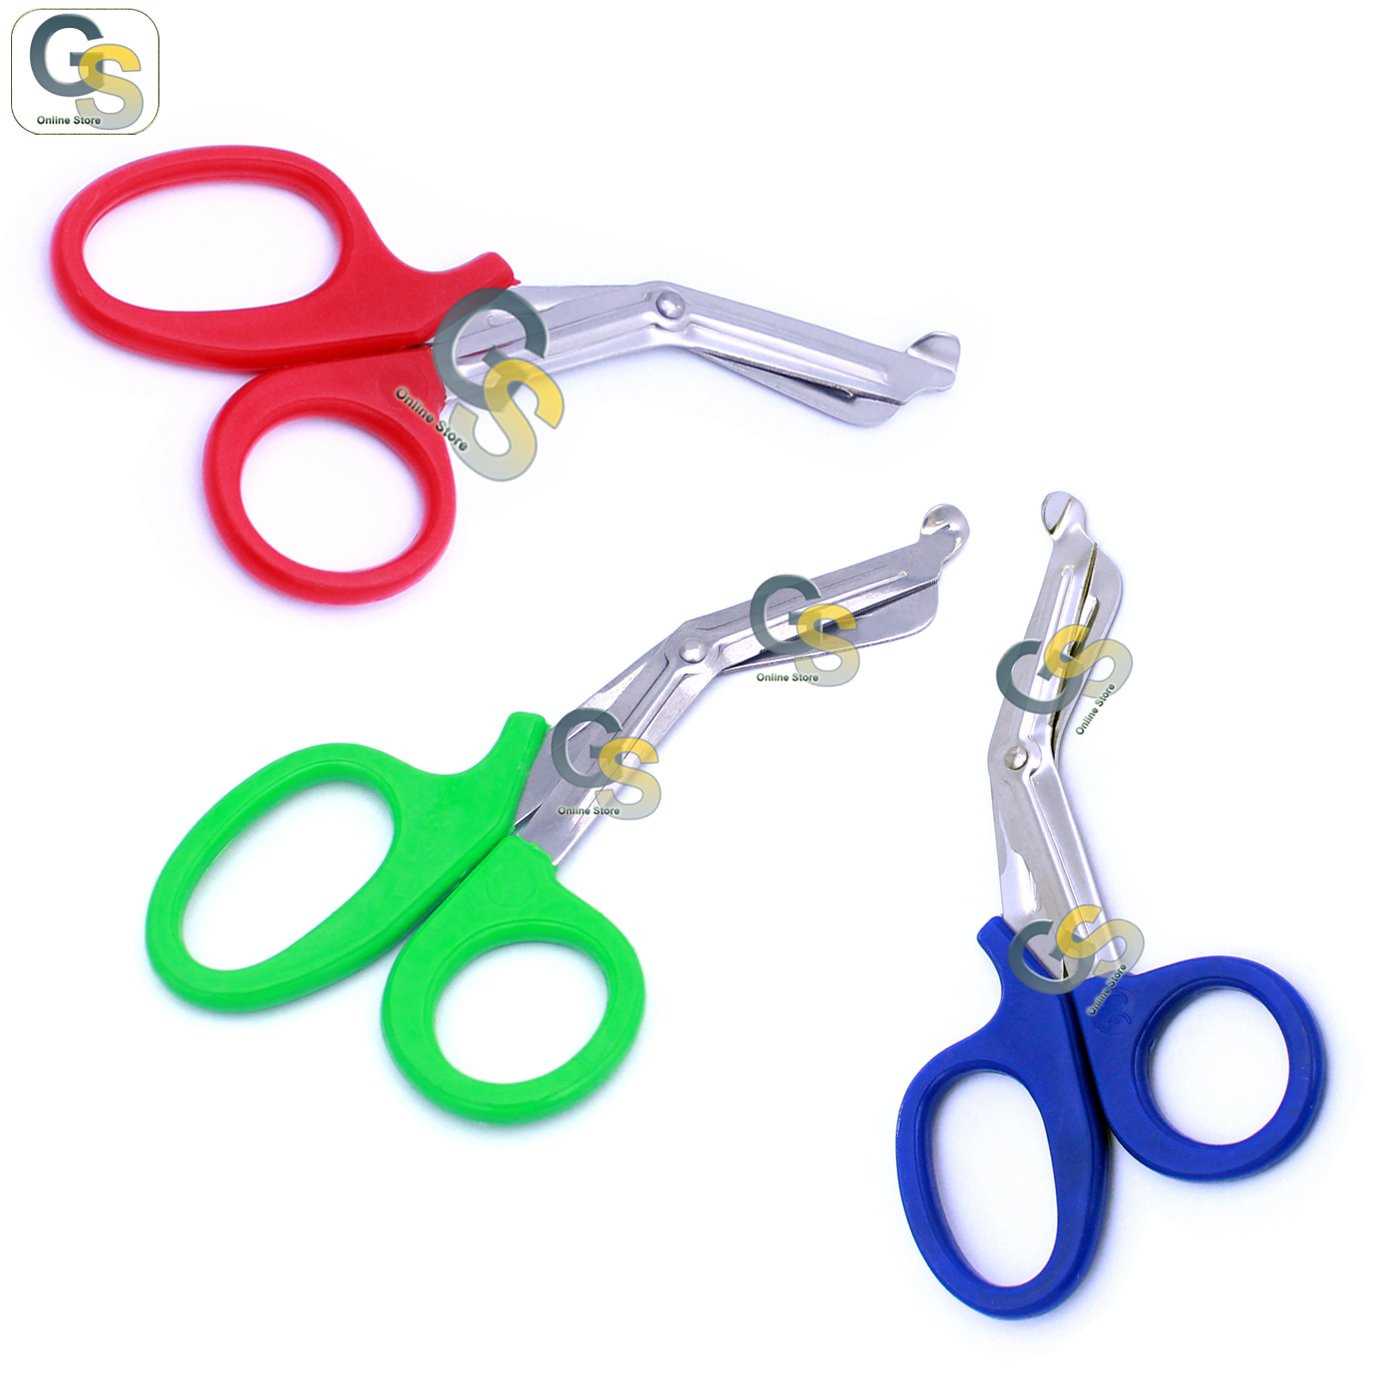 G.S 3 PCS (RED & GREEN & BLUE) PARAMEDIC UTILITY BANDAGE TRAUMA EMT EMS SHEARS SCISSORS 7.25 INCH STAINLESS STEEL